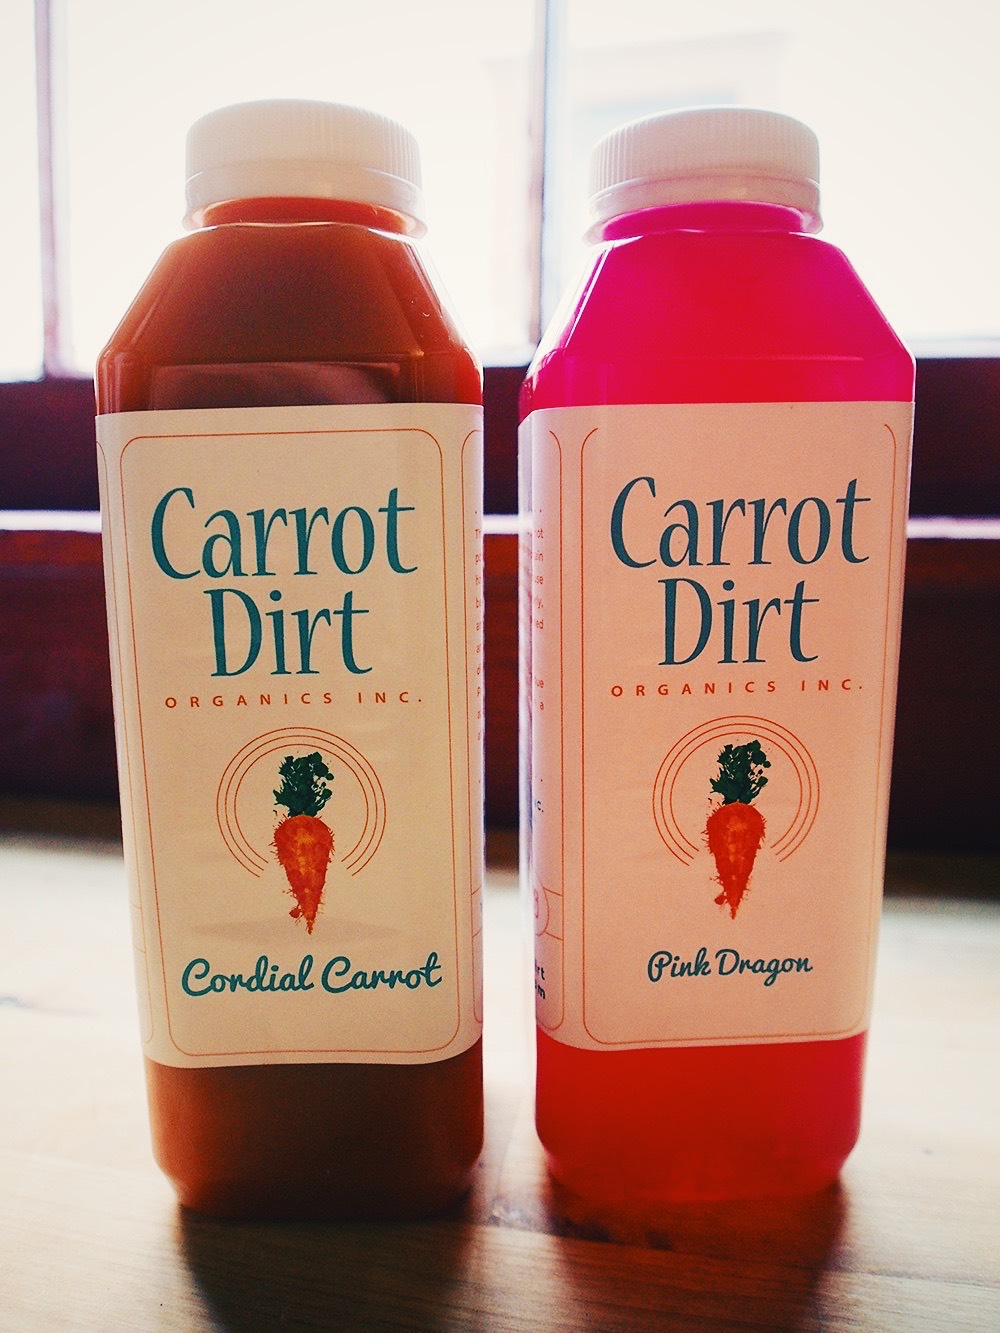 Cordial Carrot and Pink Dragon - organic, cold-press juices from Carrot Dirt Organics, Inc.